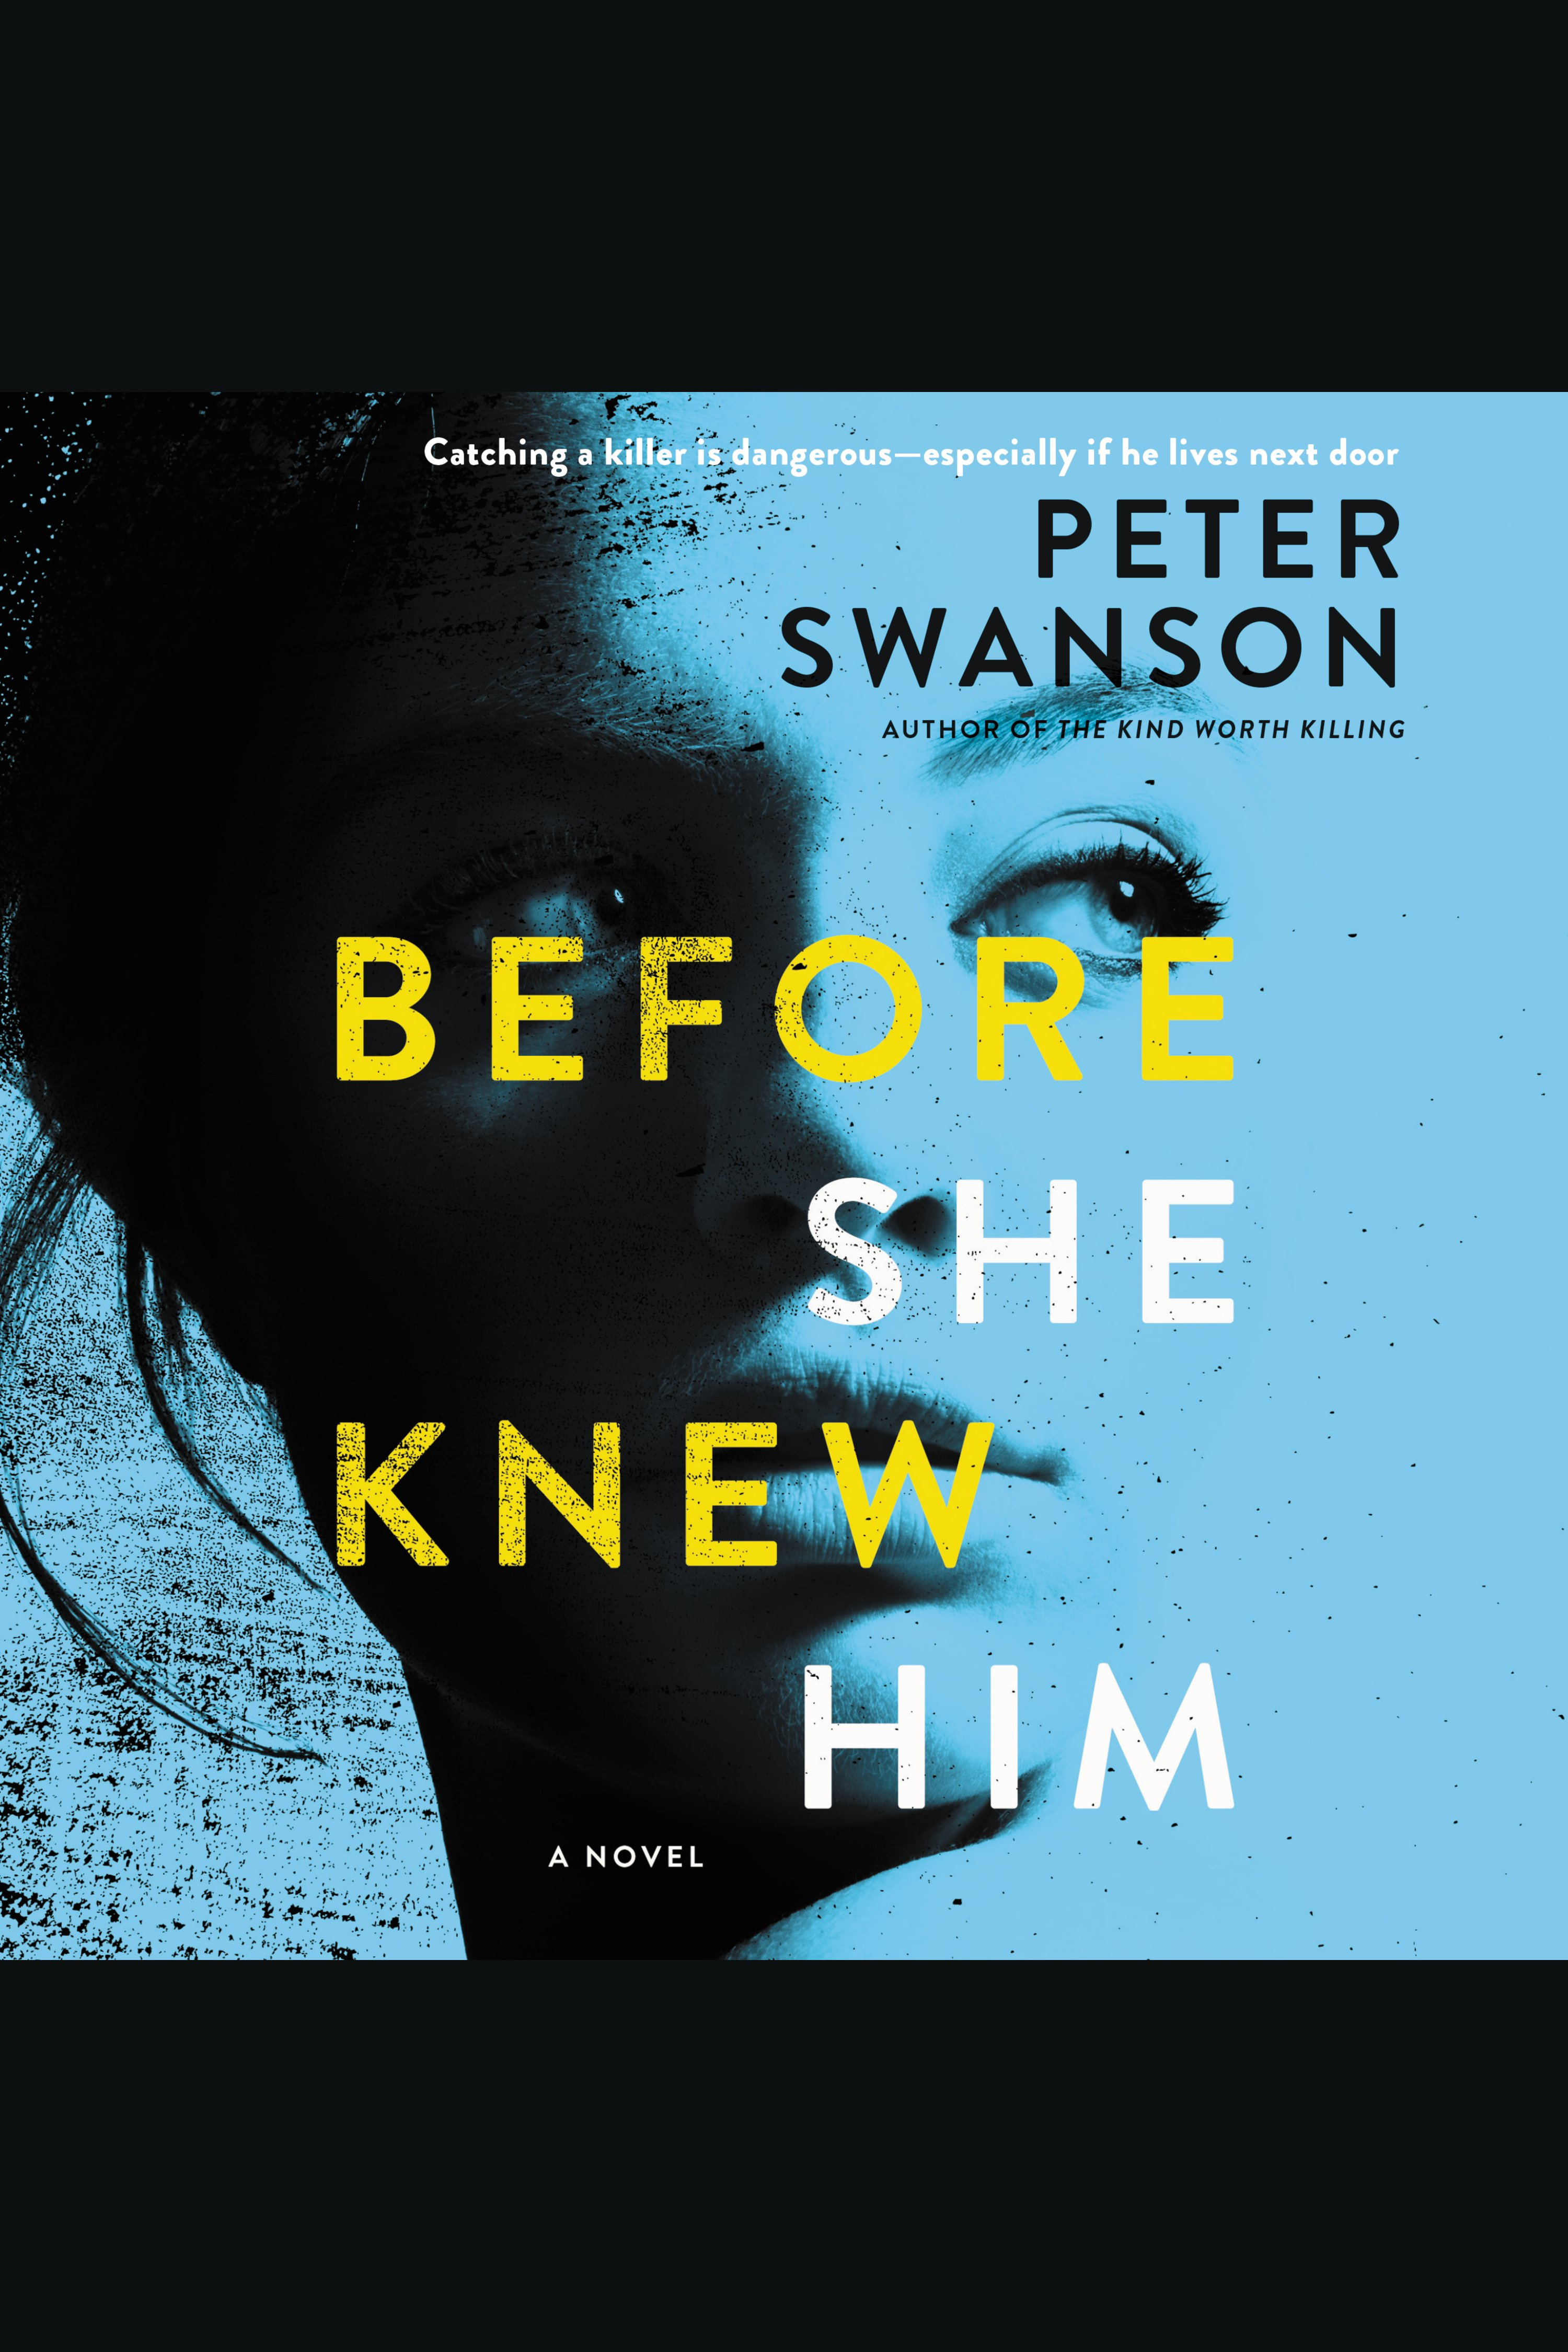 Before she knew him cover image